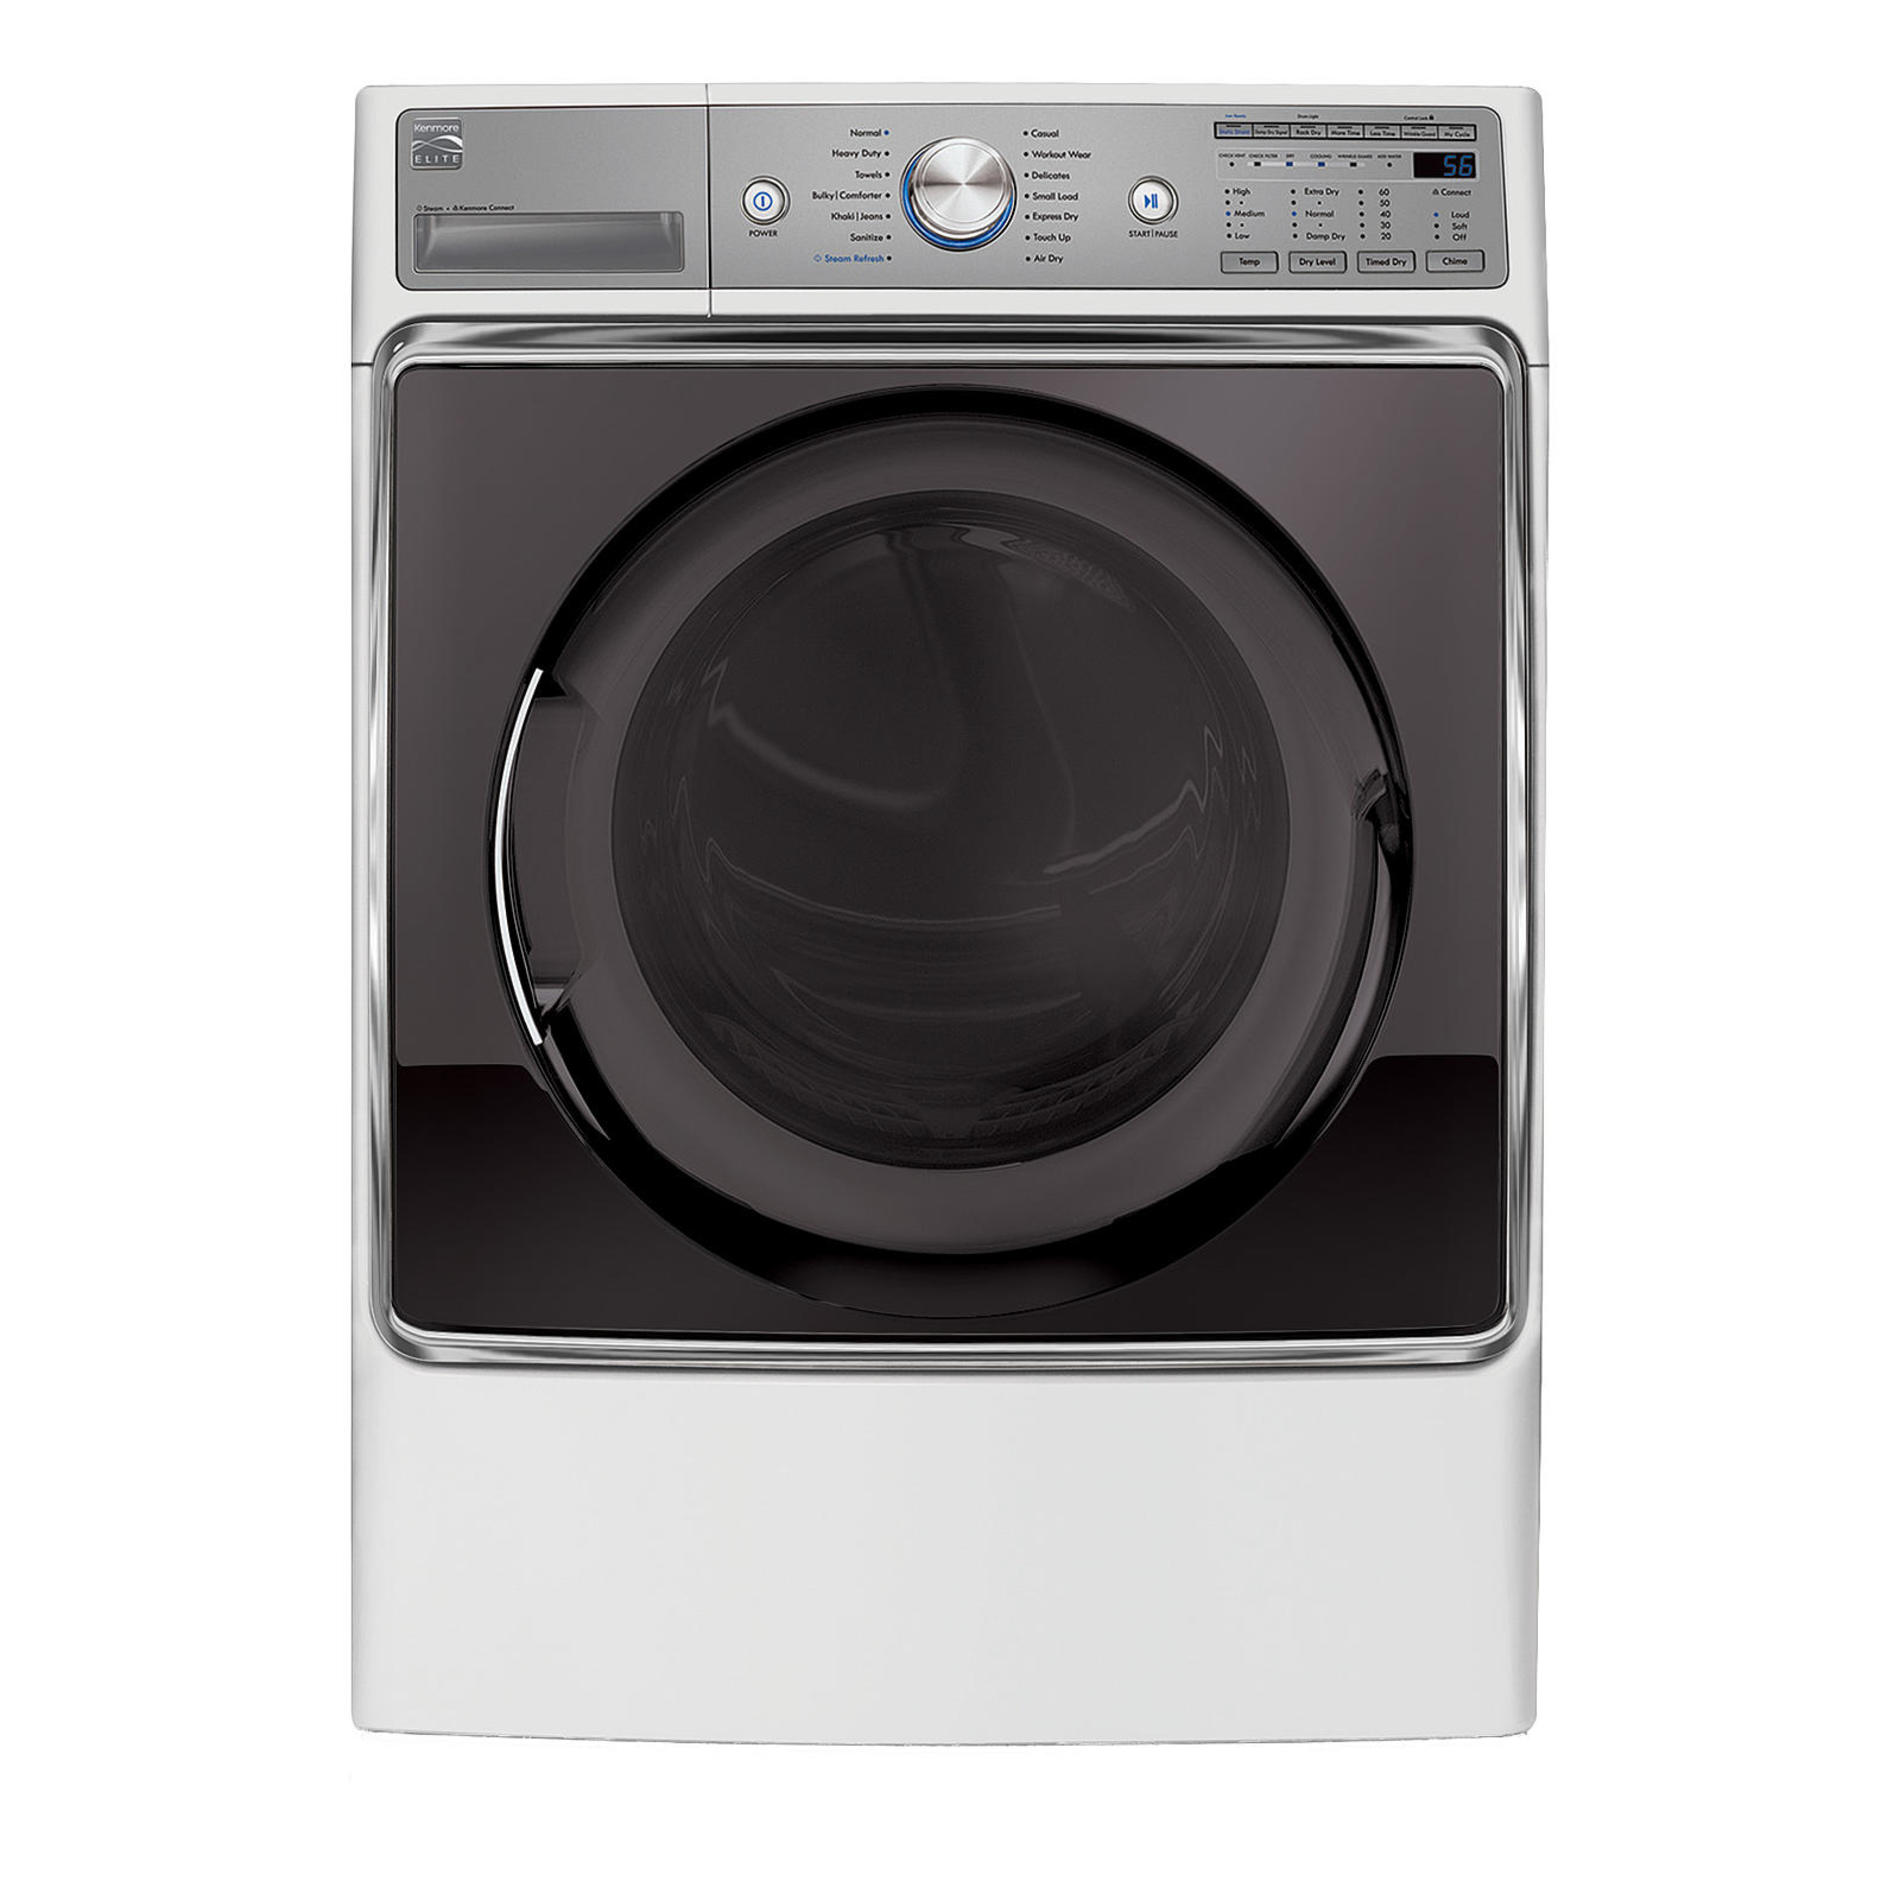 Kenmore Elite 81072 9.0 cu. ft. Electric Dryer - White